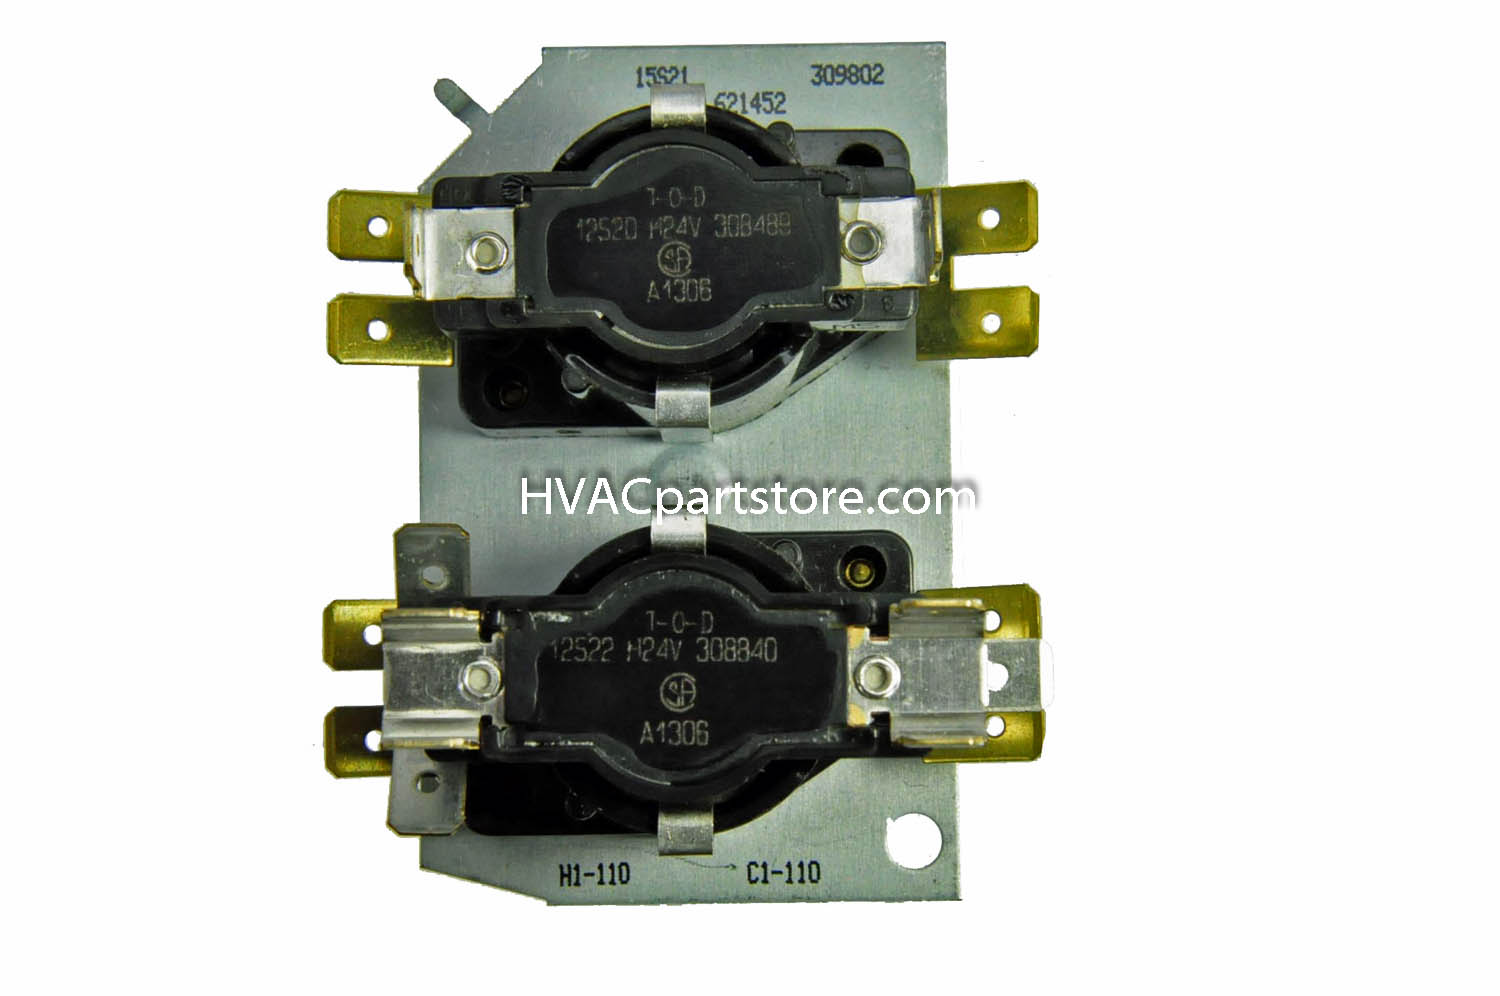 411597 Tempstar Not Heating Set Temperature likewise Watch additionally Icp Tempstar Furnace Flame Sensor Rod Pse Tr1 9276480 together with Carrier Programmable Thermostat Wiring Diagram additionally Lennox Heat Pump Wiring Diagram. on tempstar furnace parts diagram